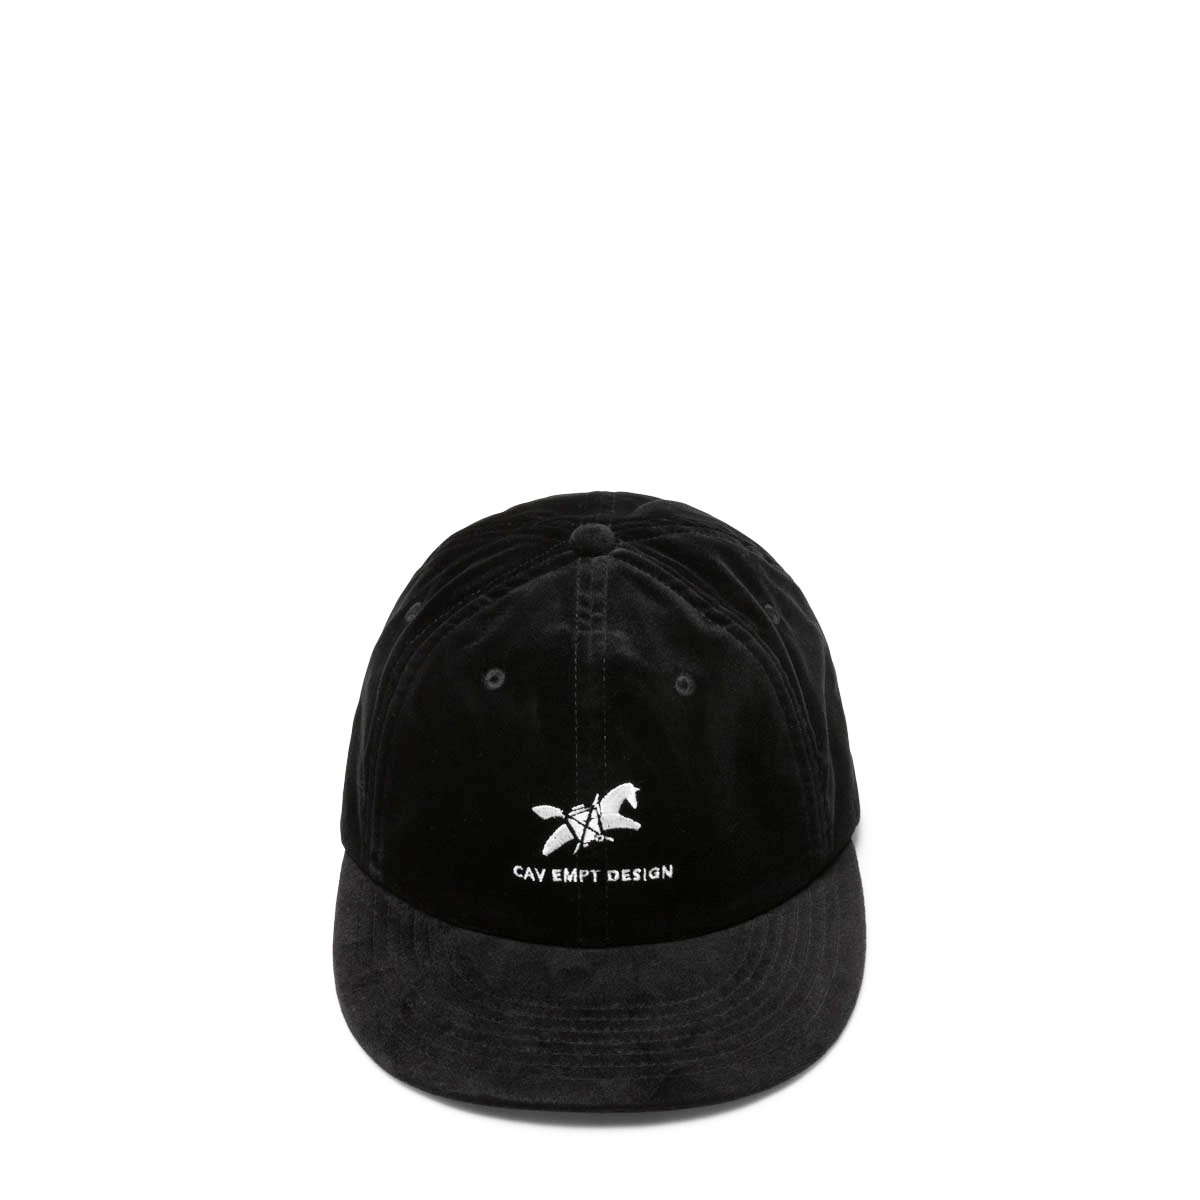 Cav Empt Headwear BLACK / OS WASTE SADDLE LOW CAP